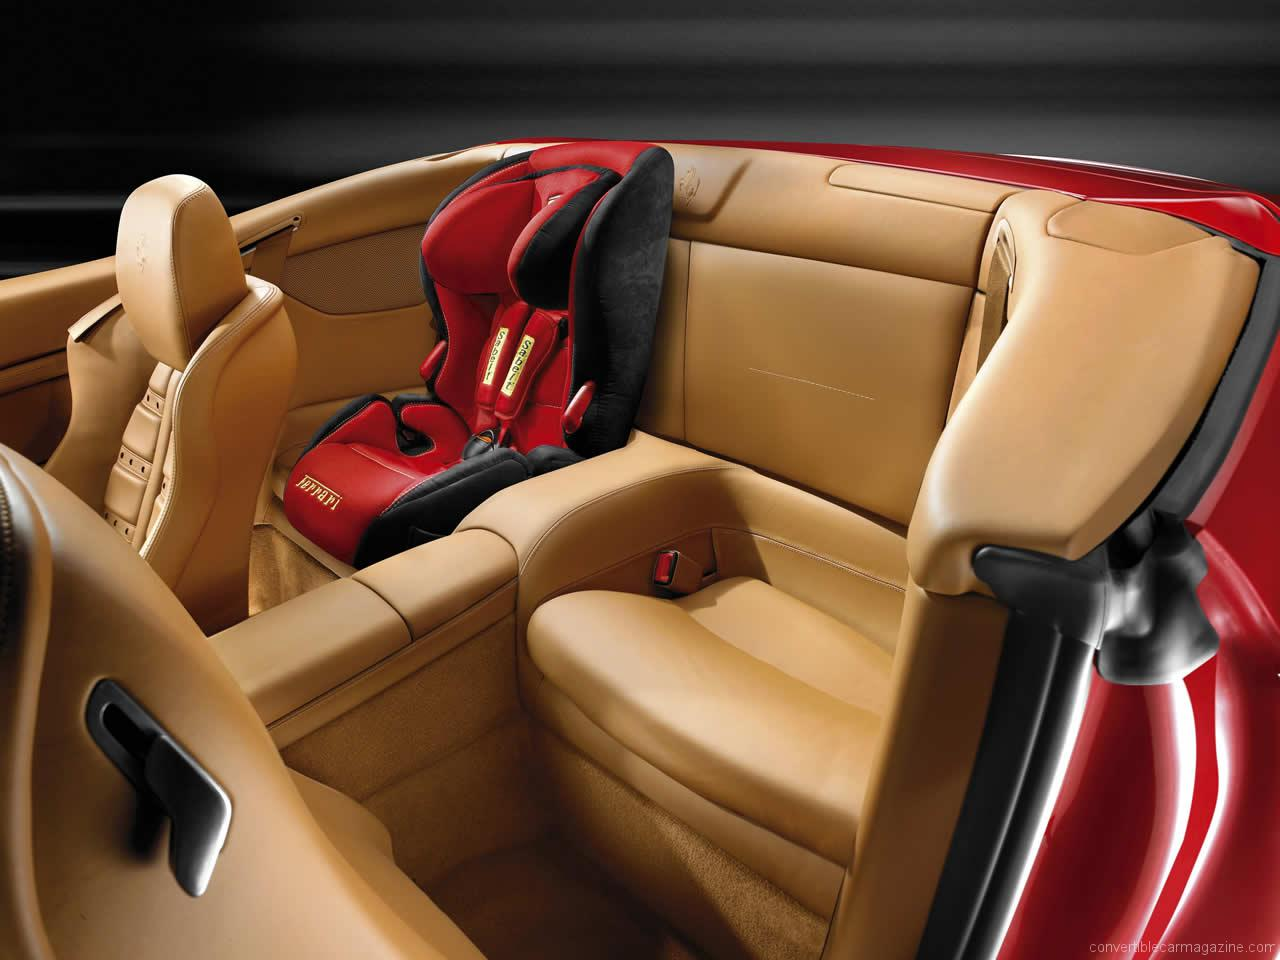 ferrari 4 seater interior images galleries with a bite. Black Bedroom Furniture Sets. Home Design Ideas